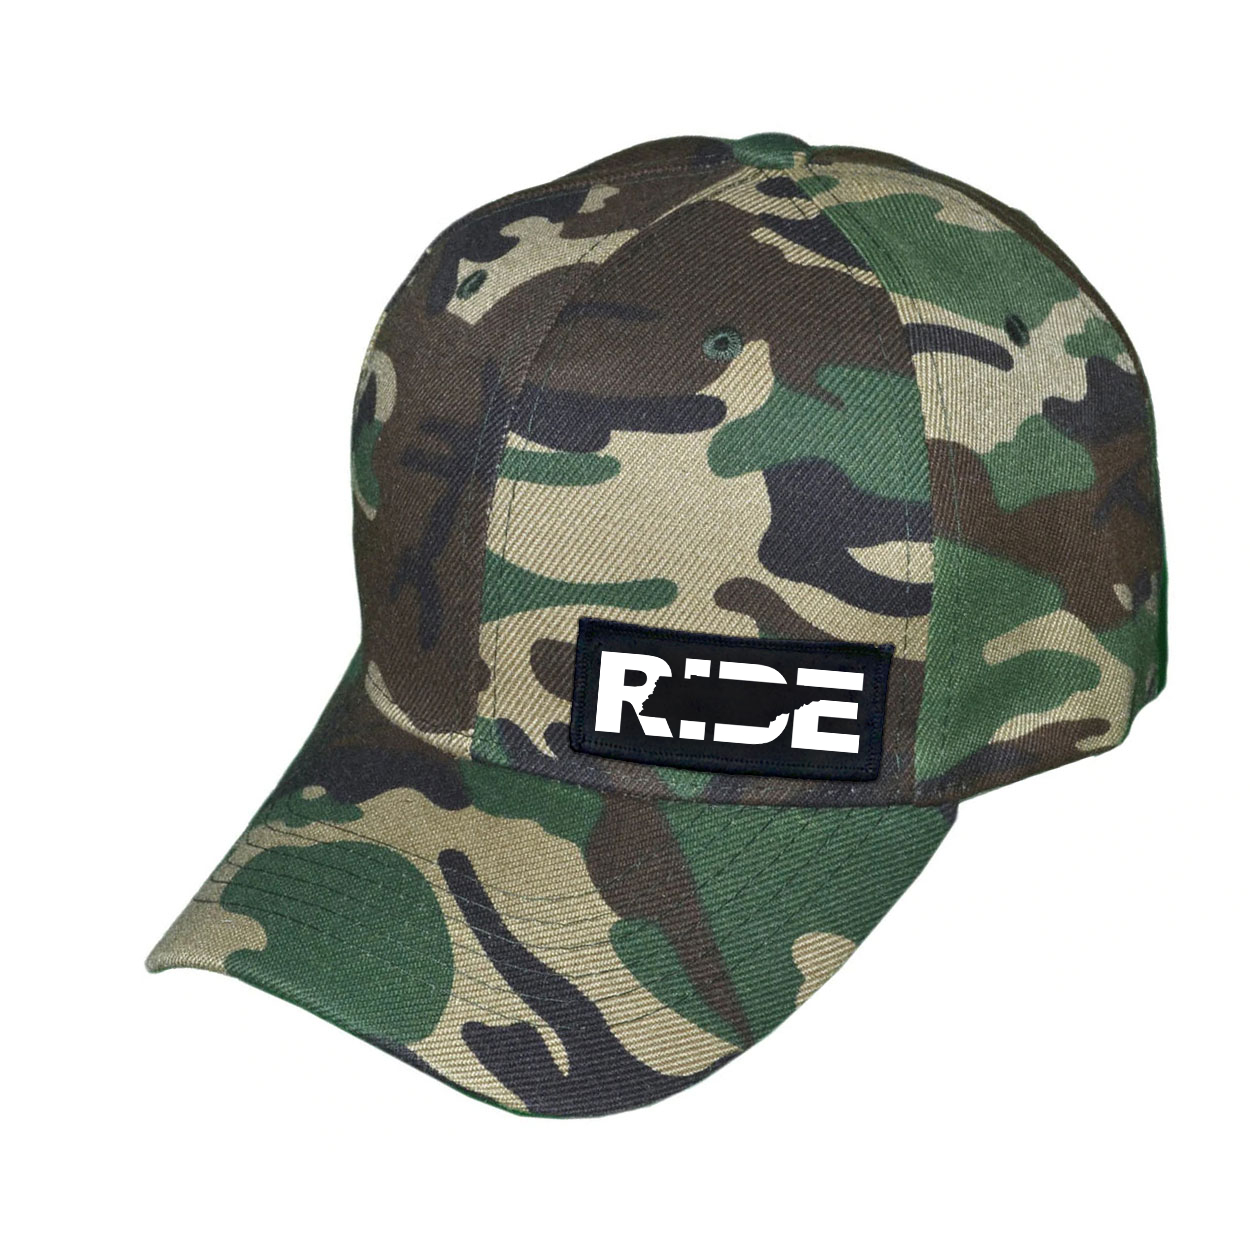 Ride Tennessee Night Out Woven Patch Hat Camo (White Logo)